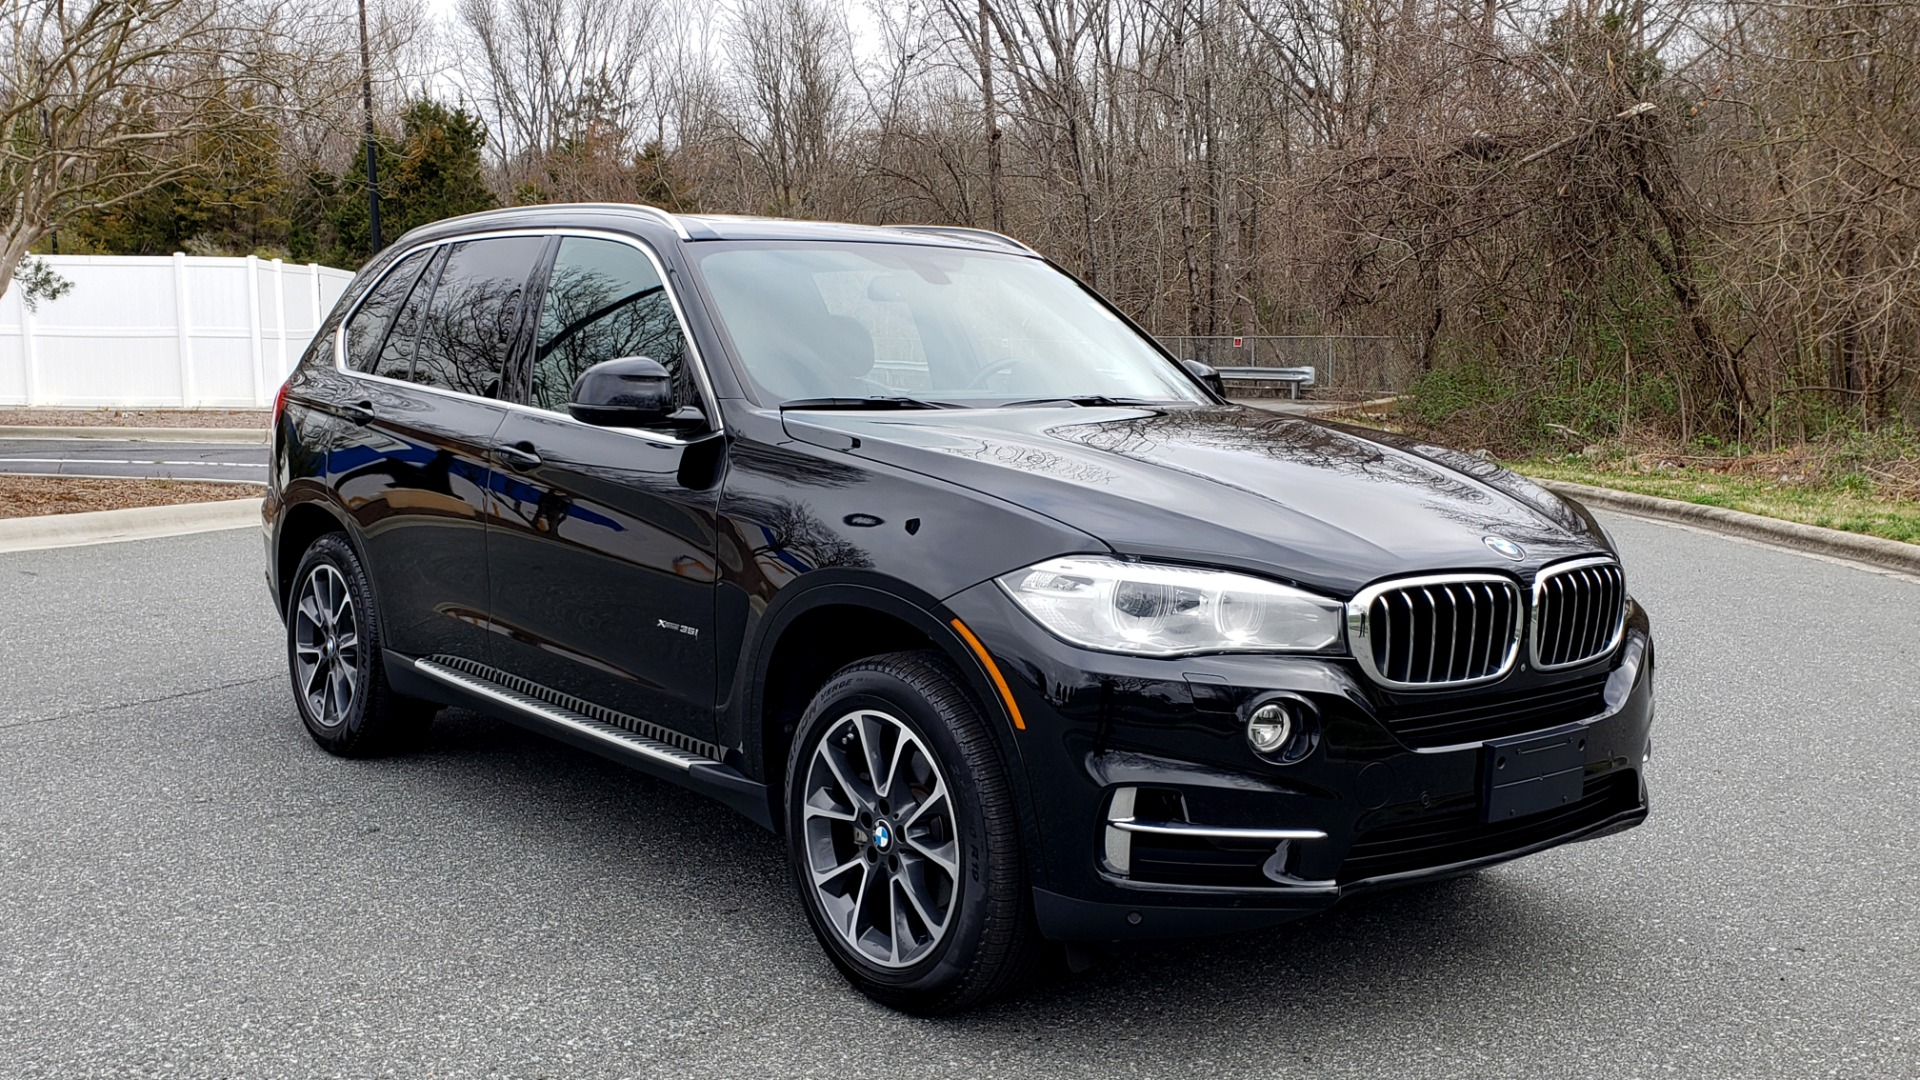 Used 2017 BMW X5 XDRIVE35I / PREM LUX PKG / DRVR ASST / CLD WTHR / APPLE CAR PLAY for sale Sold at Formula Imports in Charlotte NC 28227 4